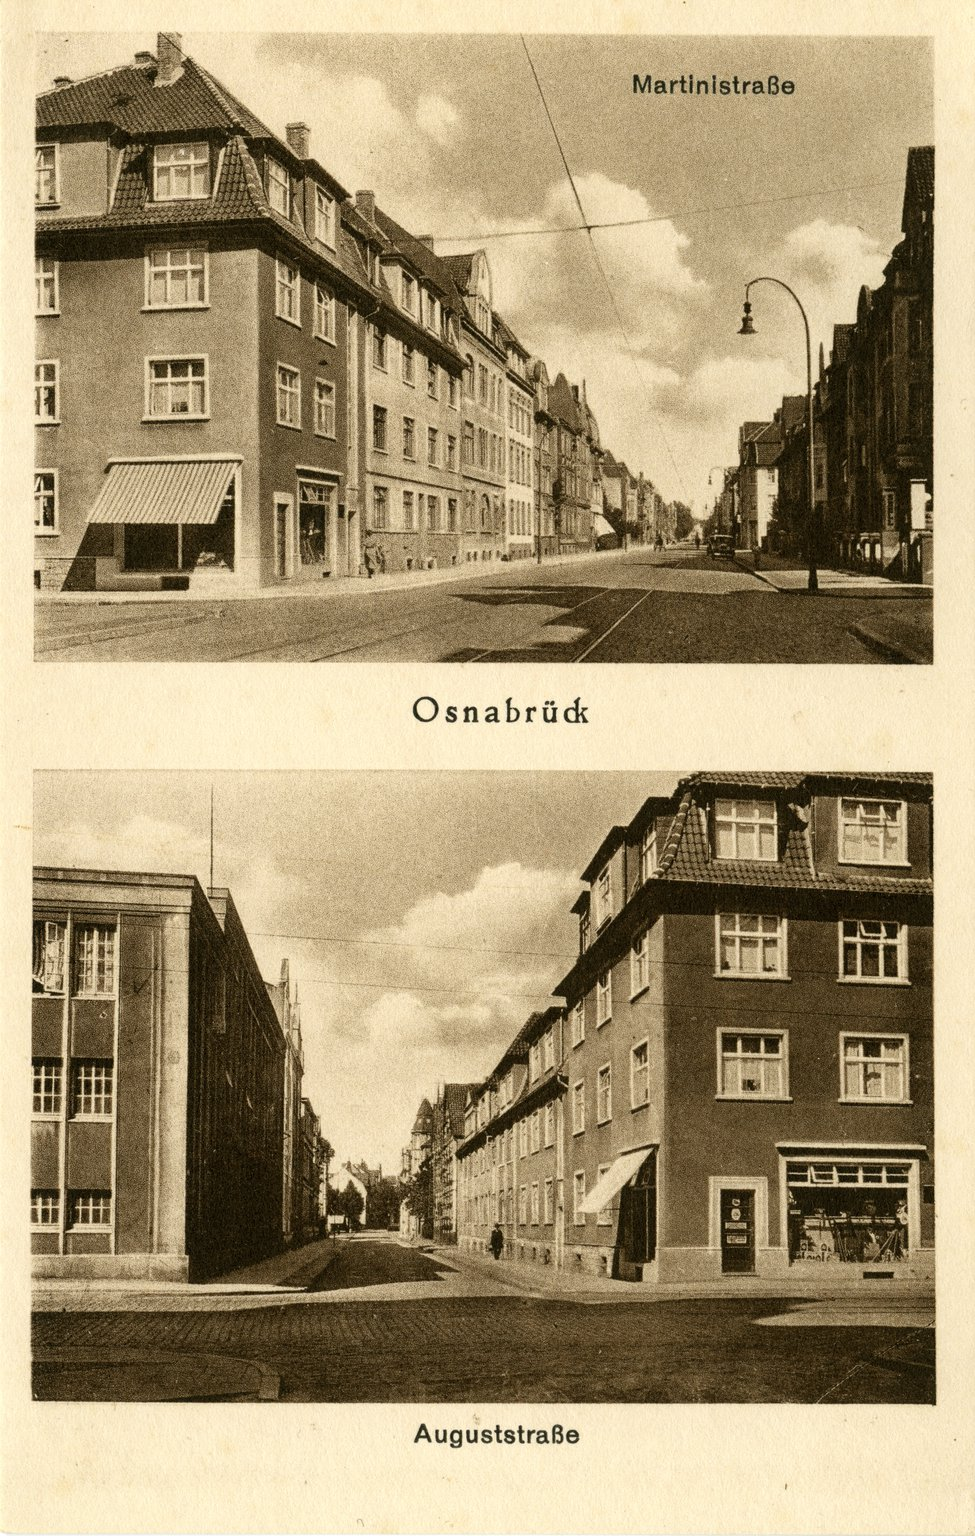 A postcard of Osnabrück, 1930s. The Van Pels family lived at Martinistraße 67a from 1930 until their departure for Amsterdam in 1937.